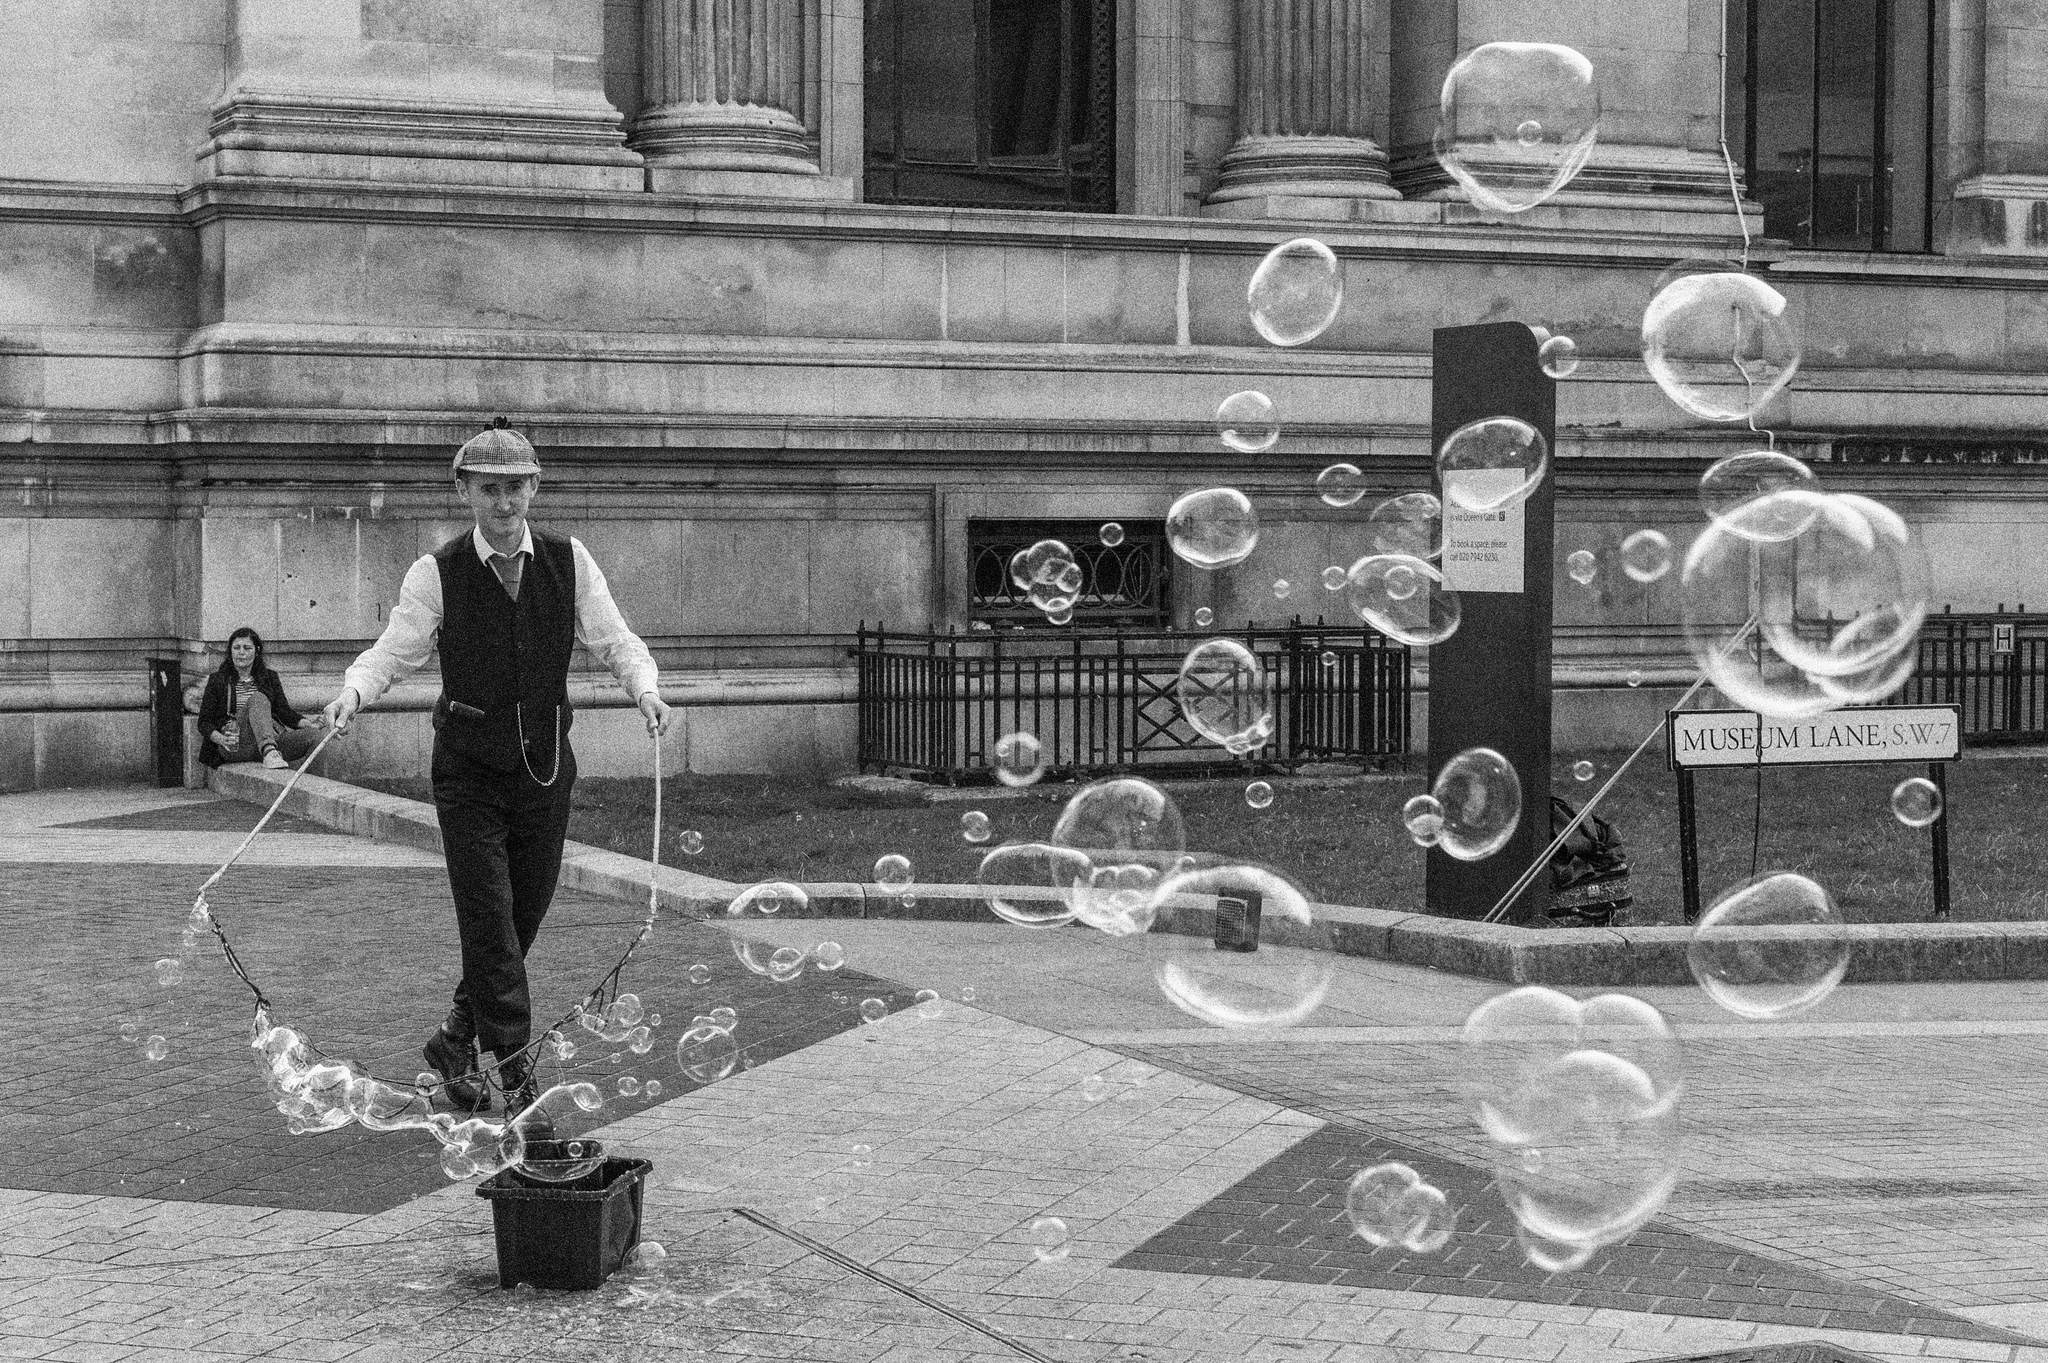 A street entertainer blows bubbles outside the British Museum.